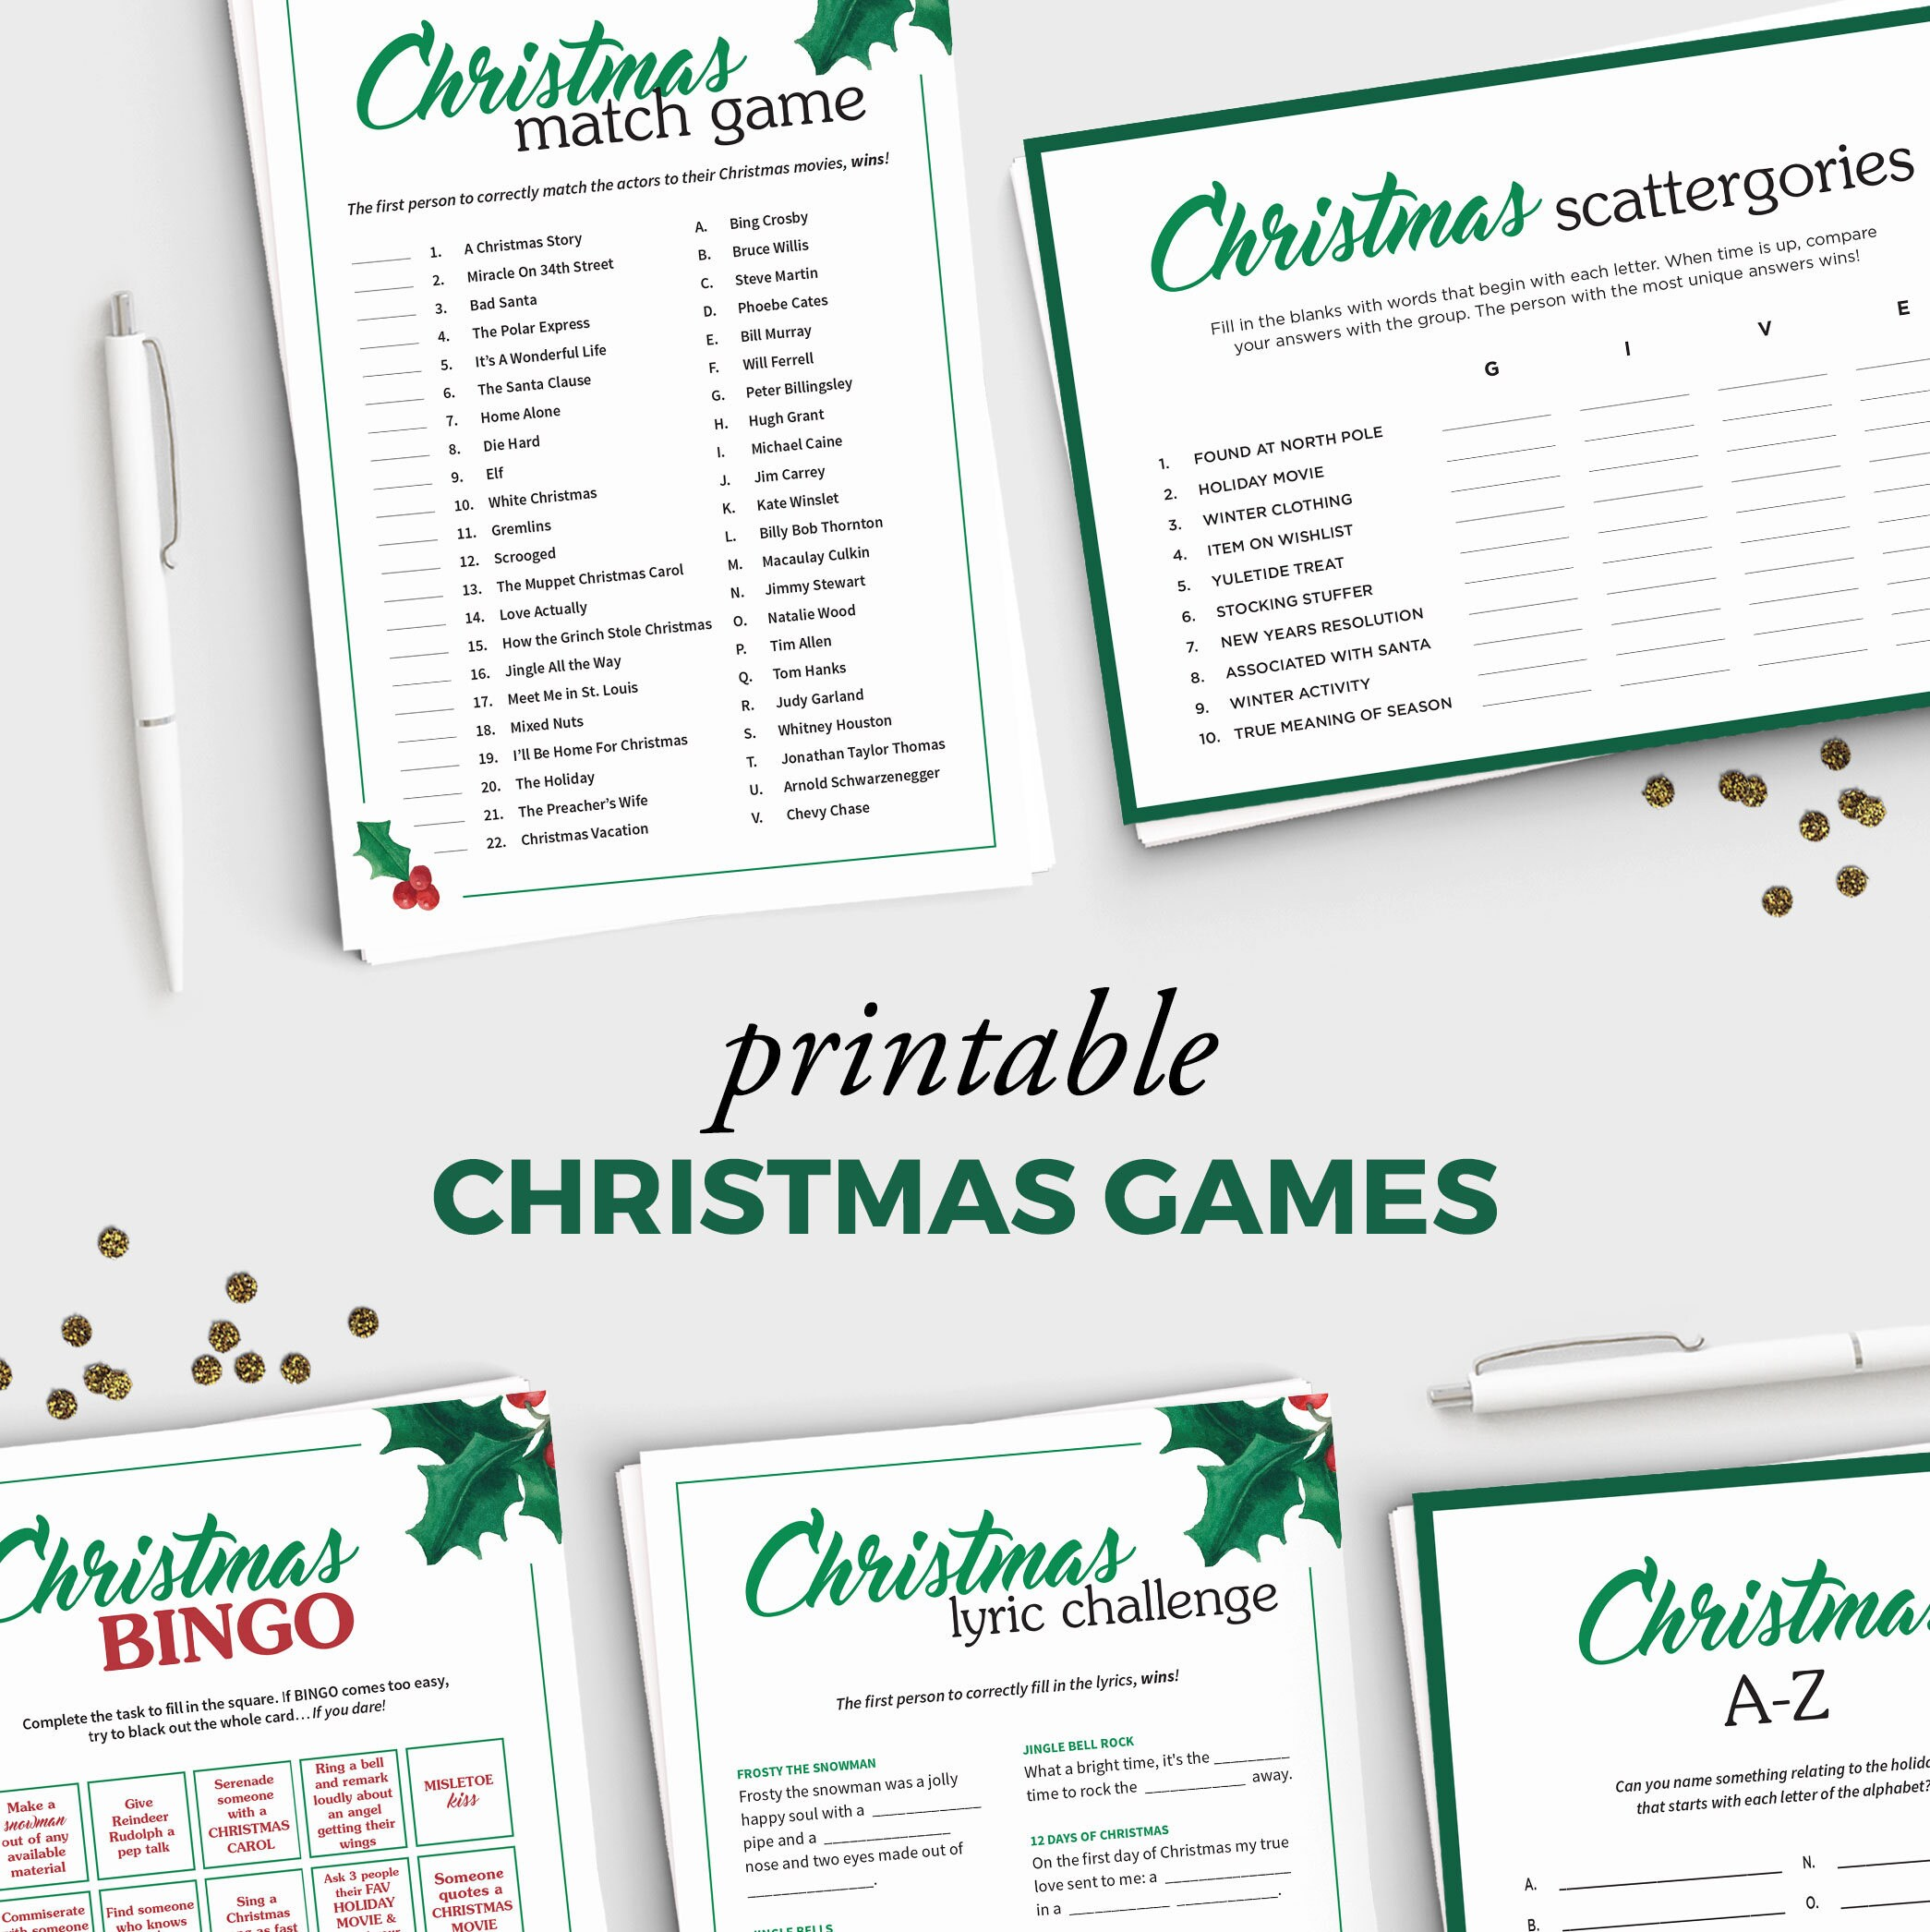 5 Fun Holiday Party Games for Adults Printable Christmas